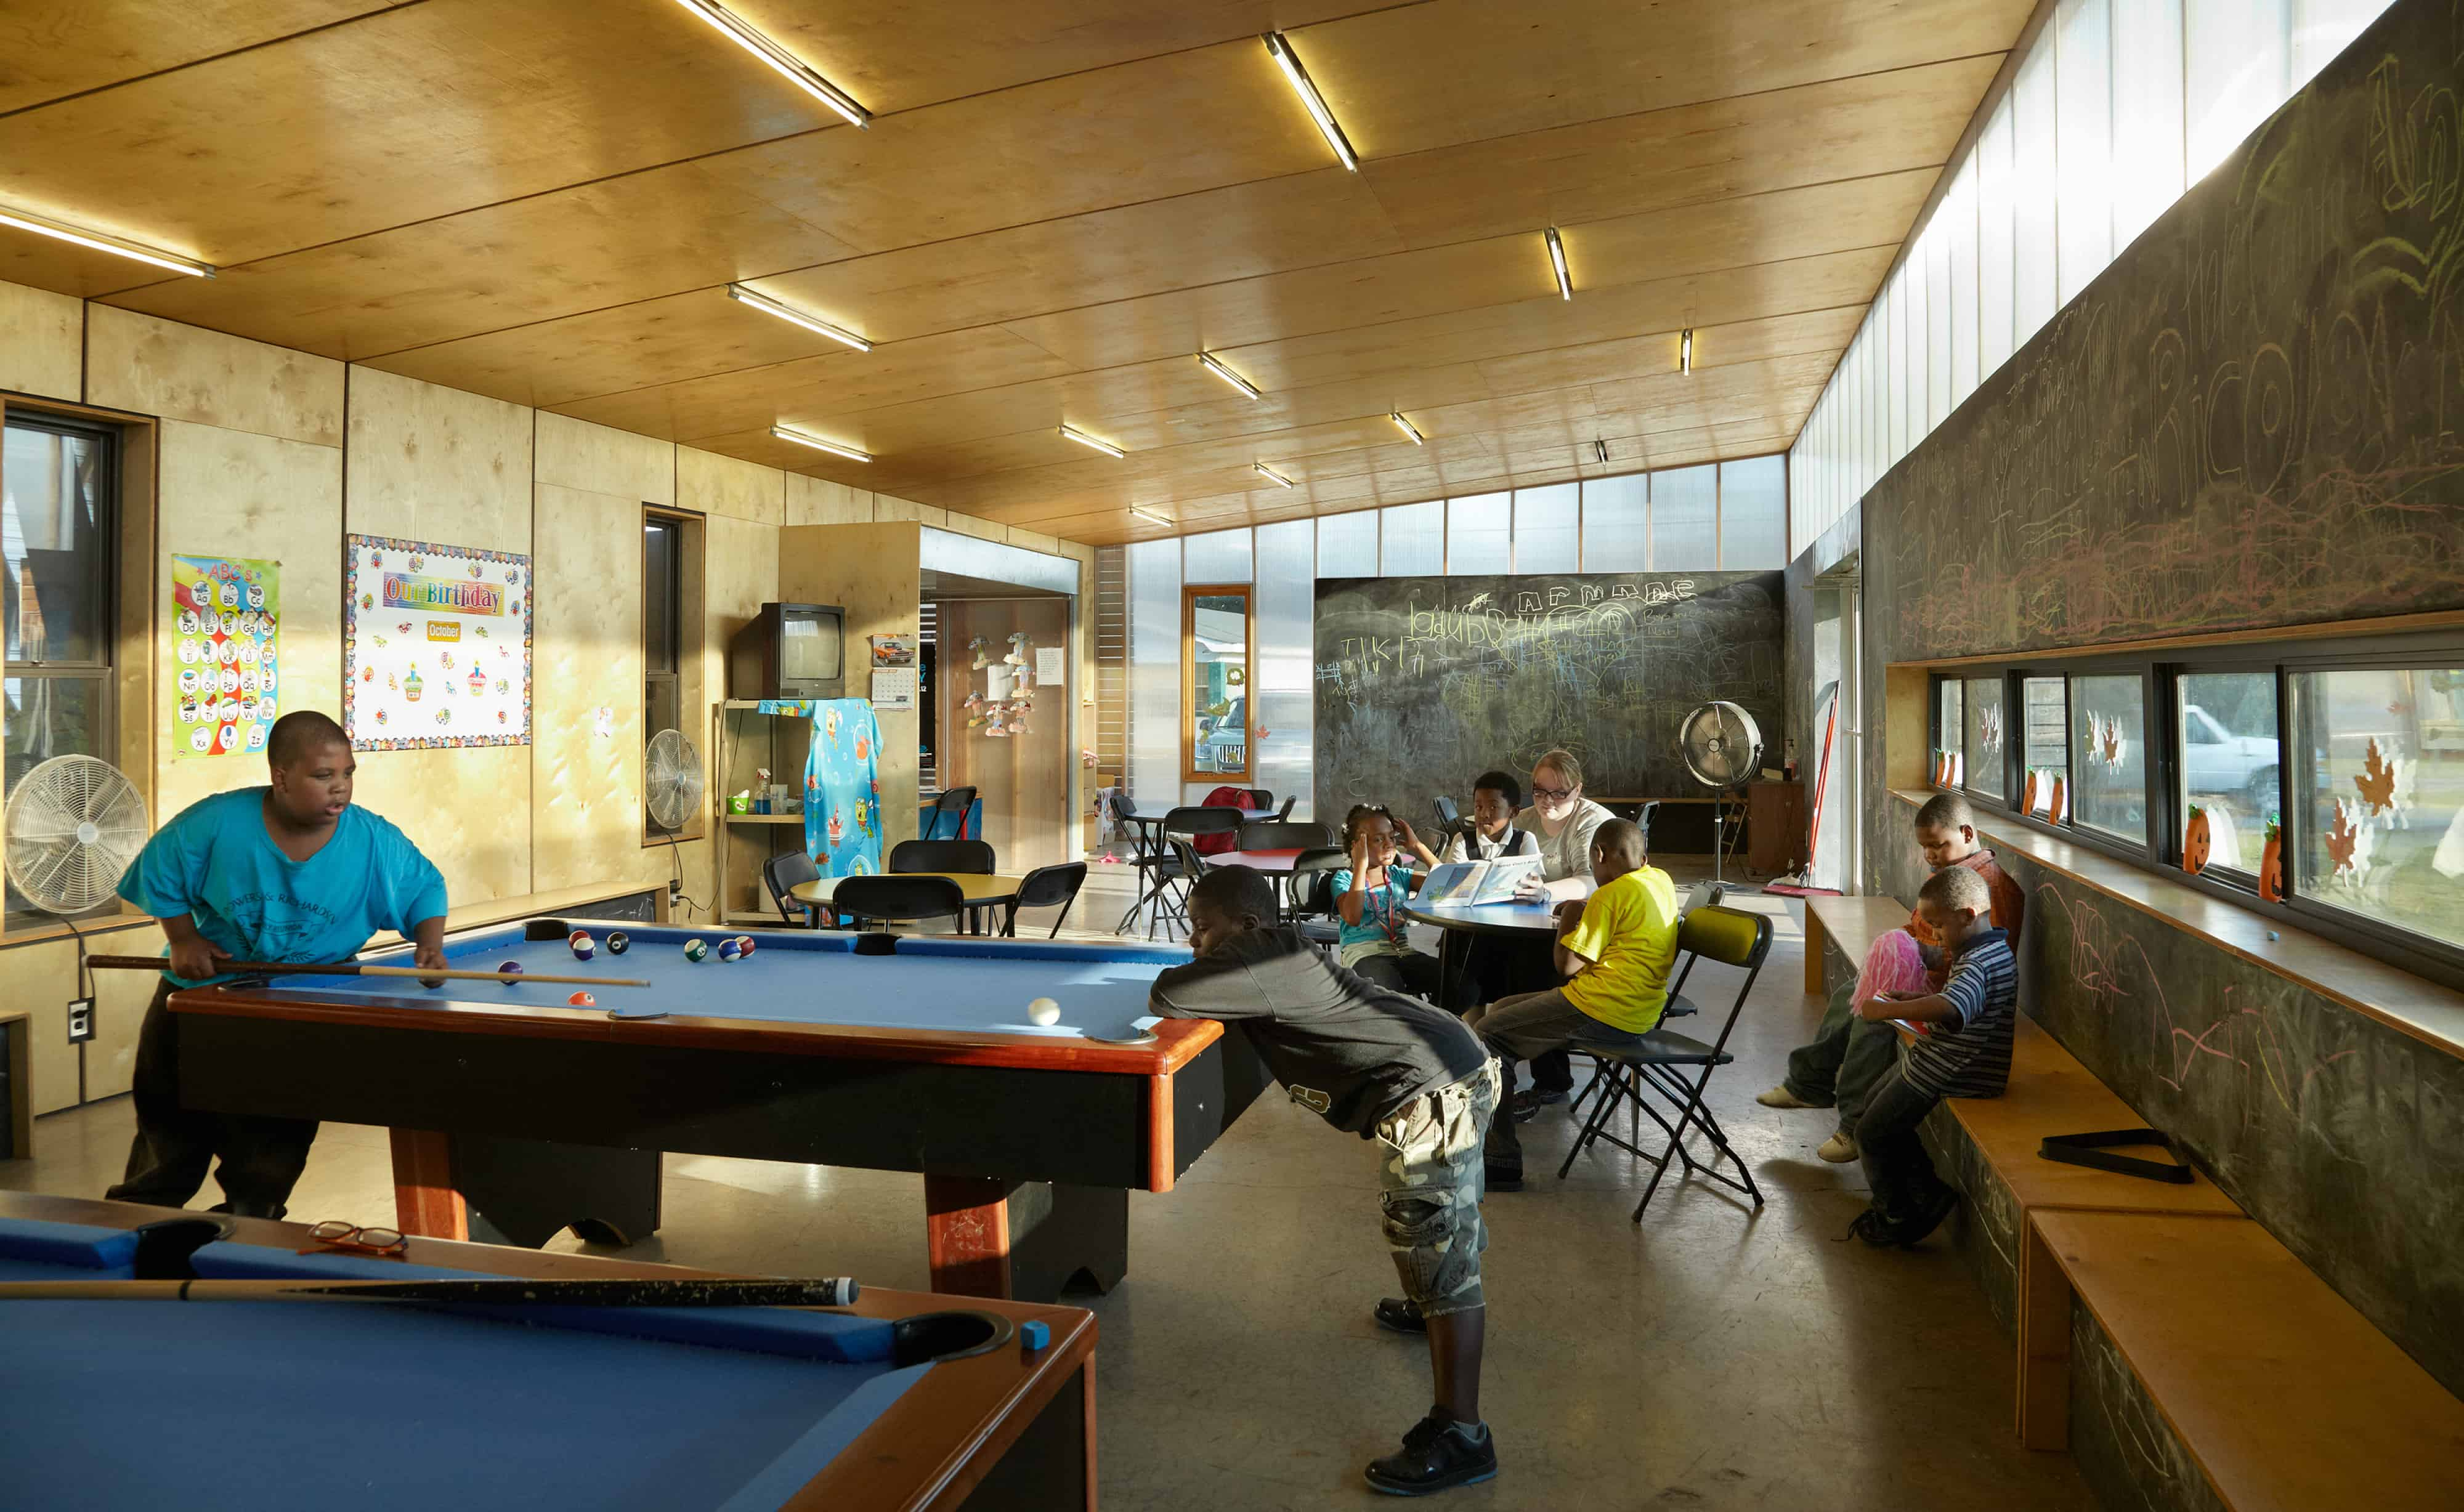 kids play pool inside the club